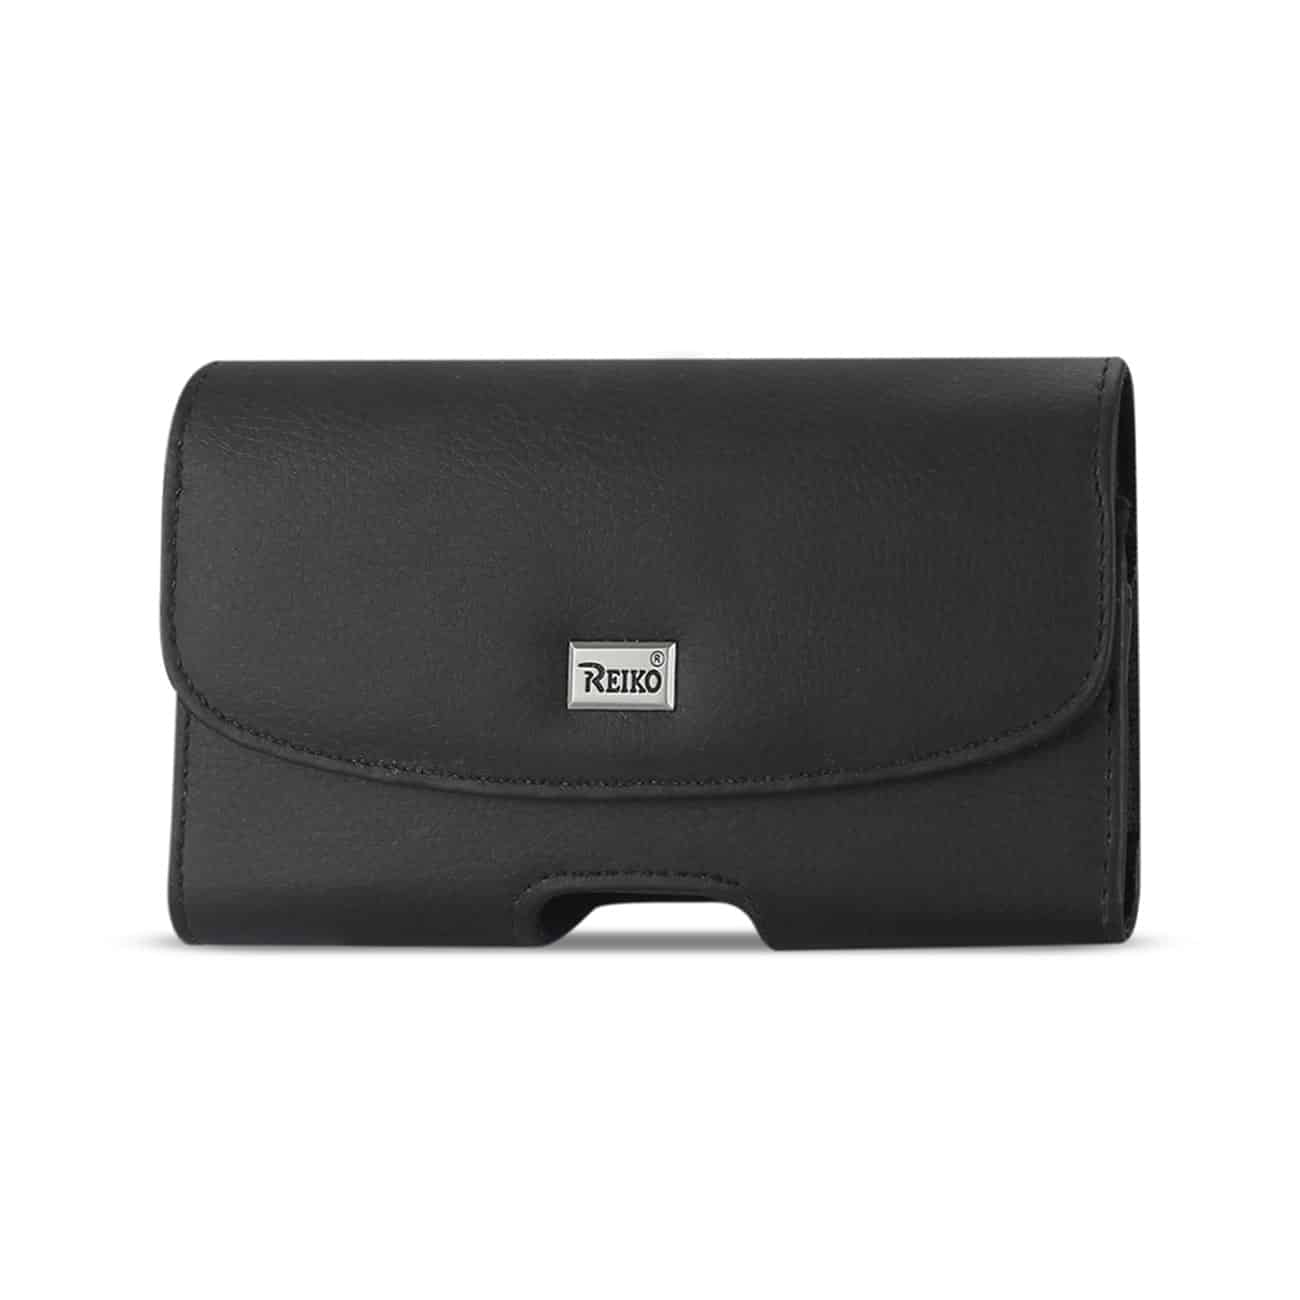 Horizontal Leather Pouch With Embossed Logo In Black (3.5X2.1X1.1 Inches)